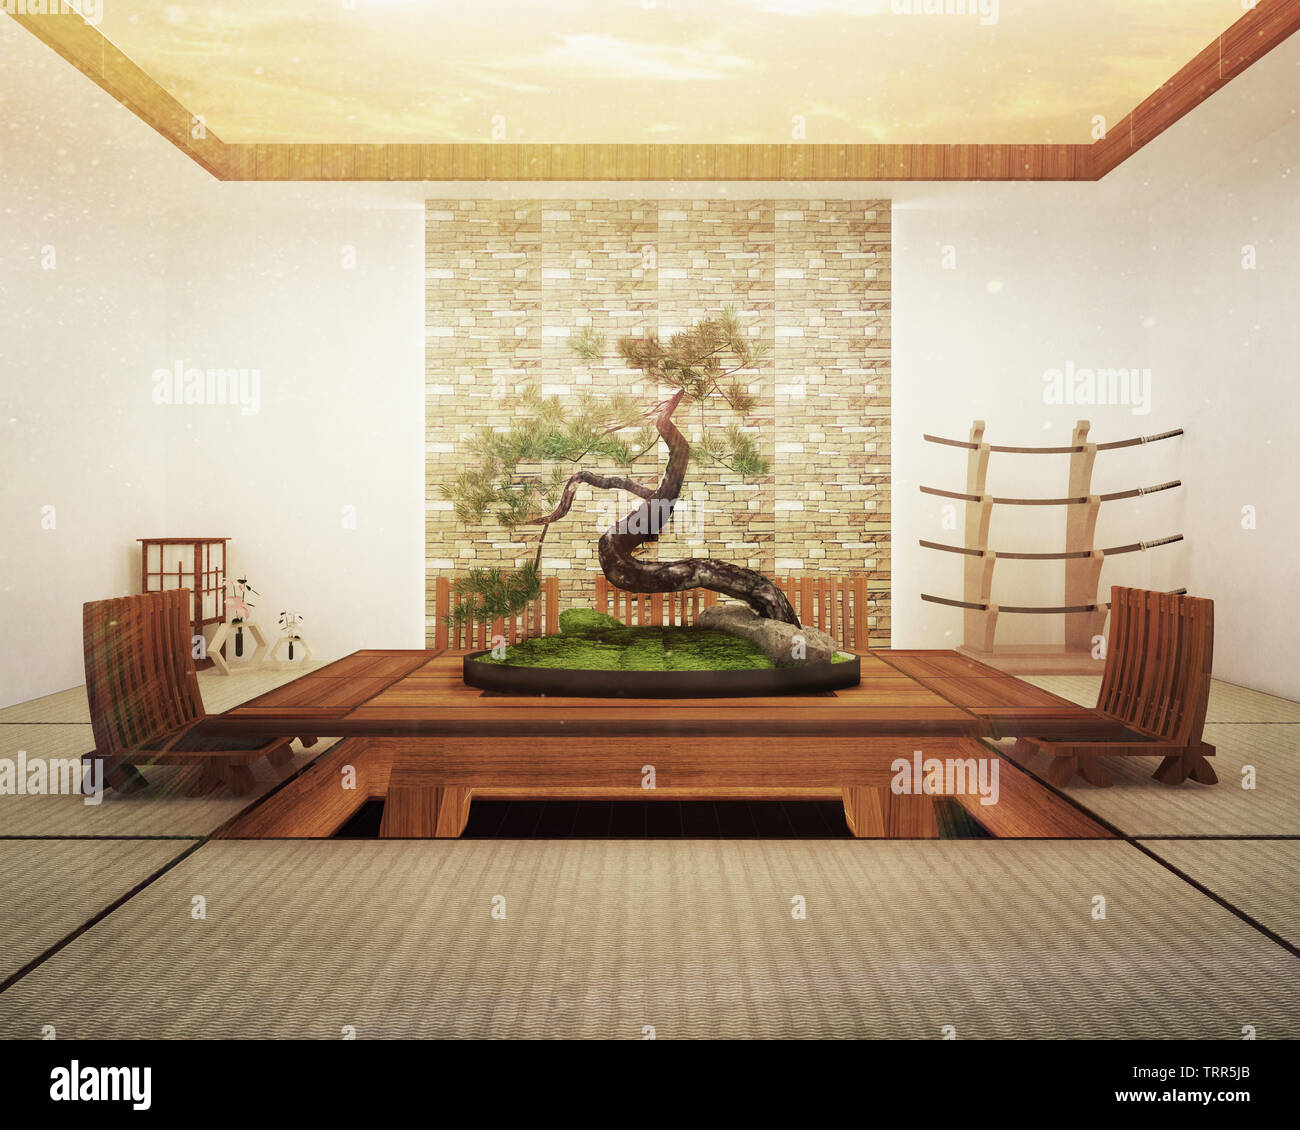 Japanese interior design,modern living room with table and decoration. 3D rendering Stock Photo